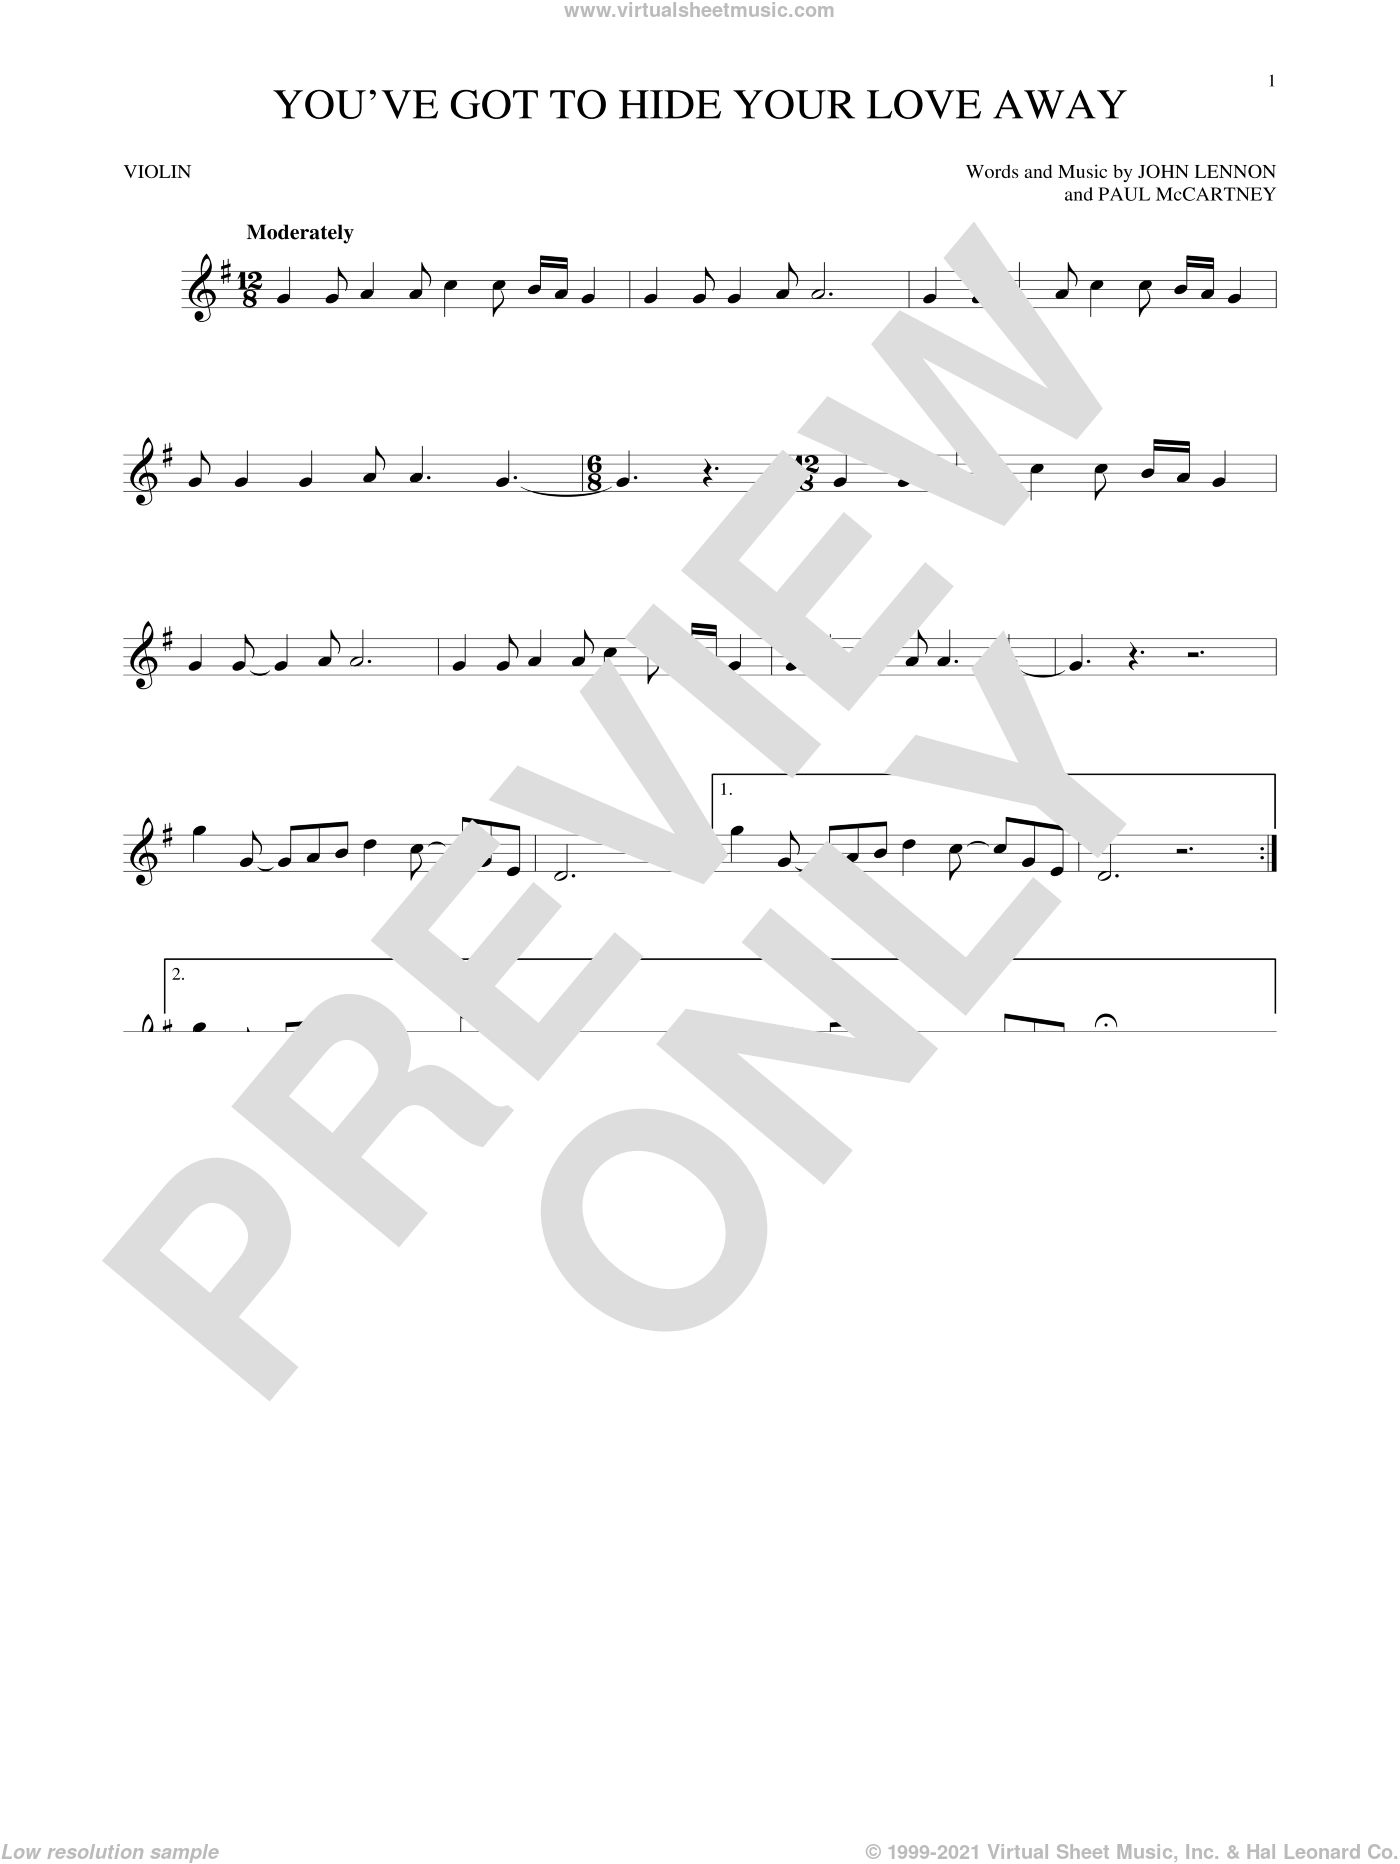 You've Got To Hide Your Love Away sheet music for violin solo by The Beatles, John Lennon and Paul McCartney, intermediate skill level